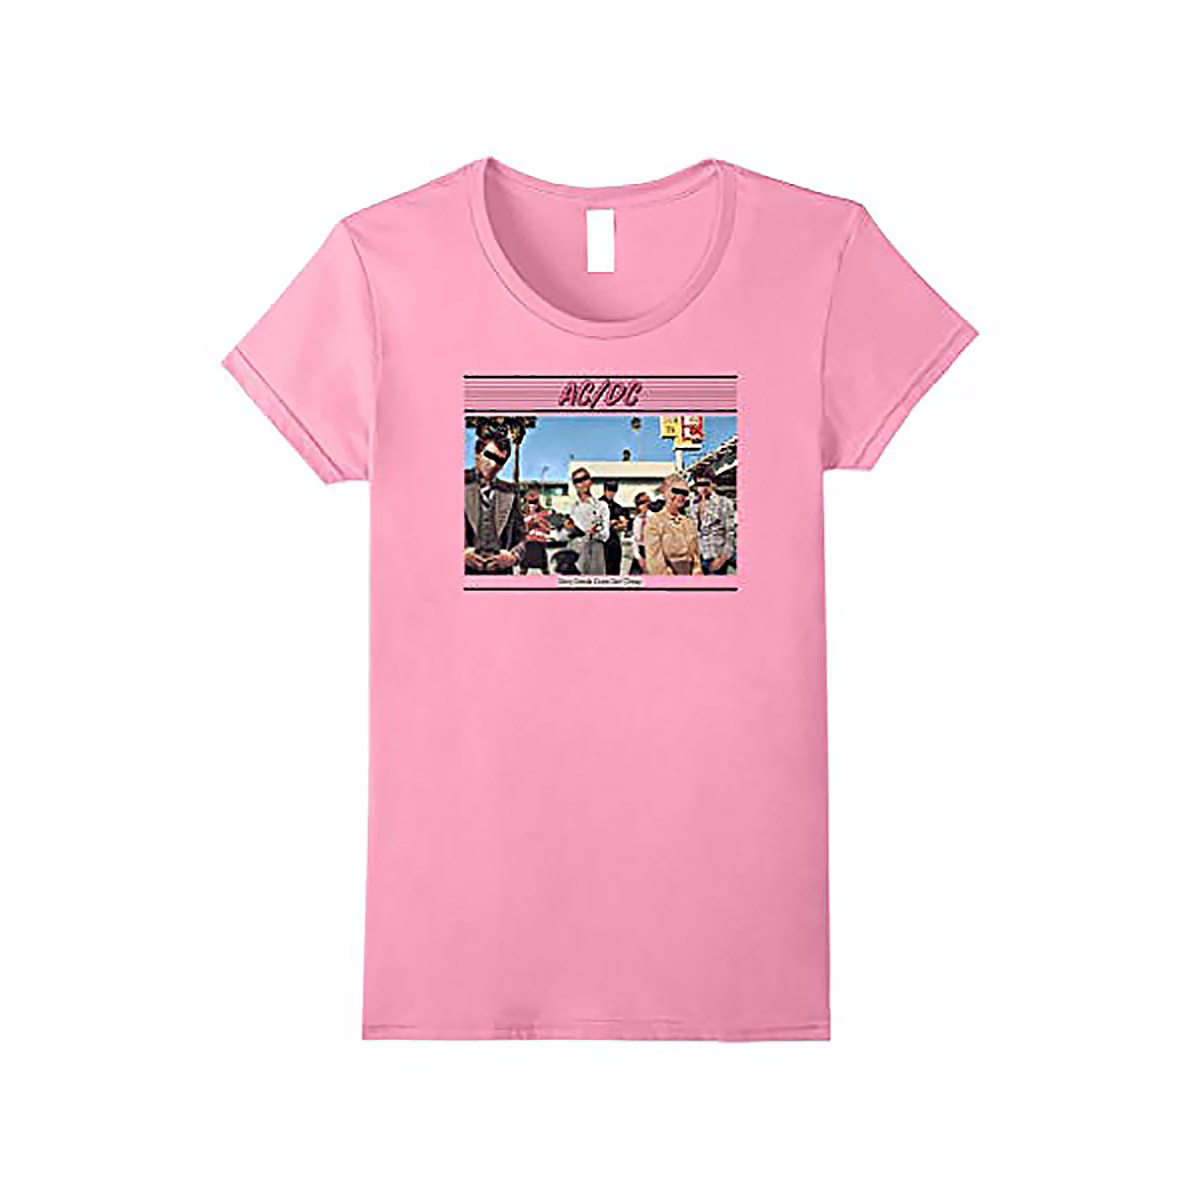 Women's CheapT-shirt